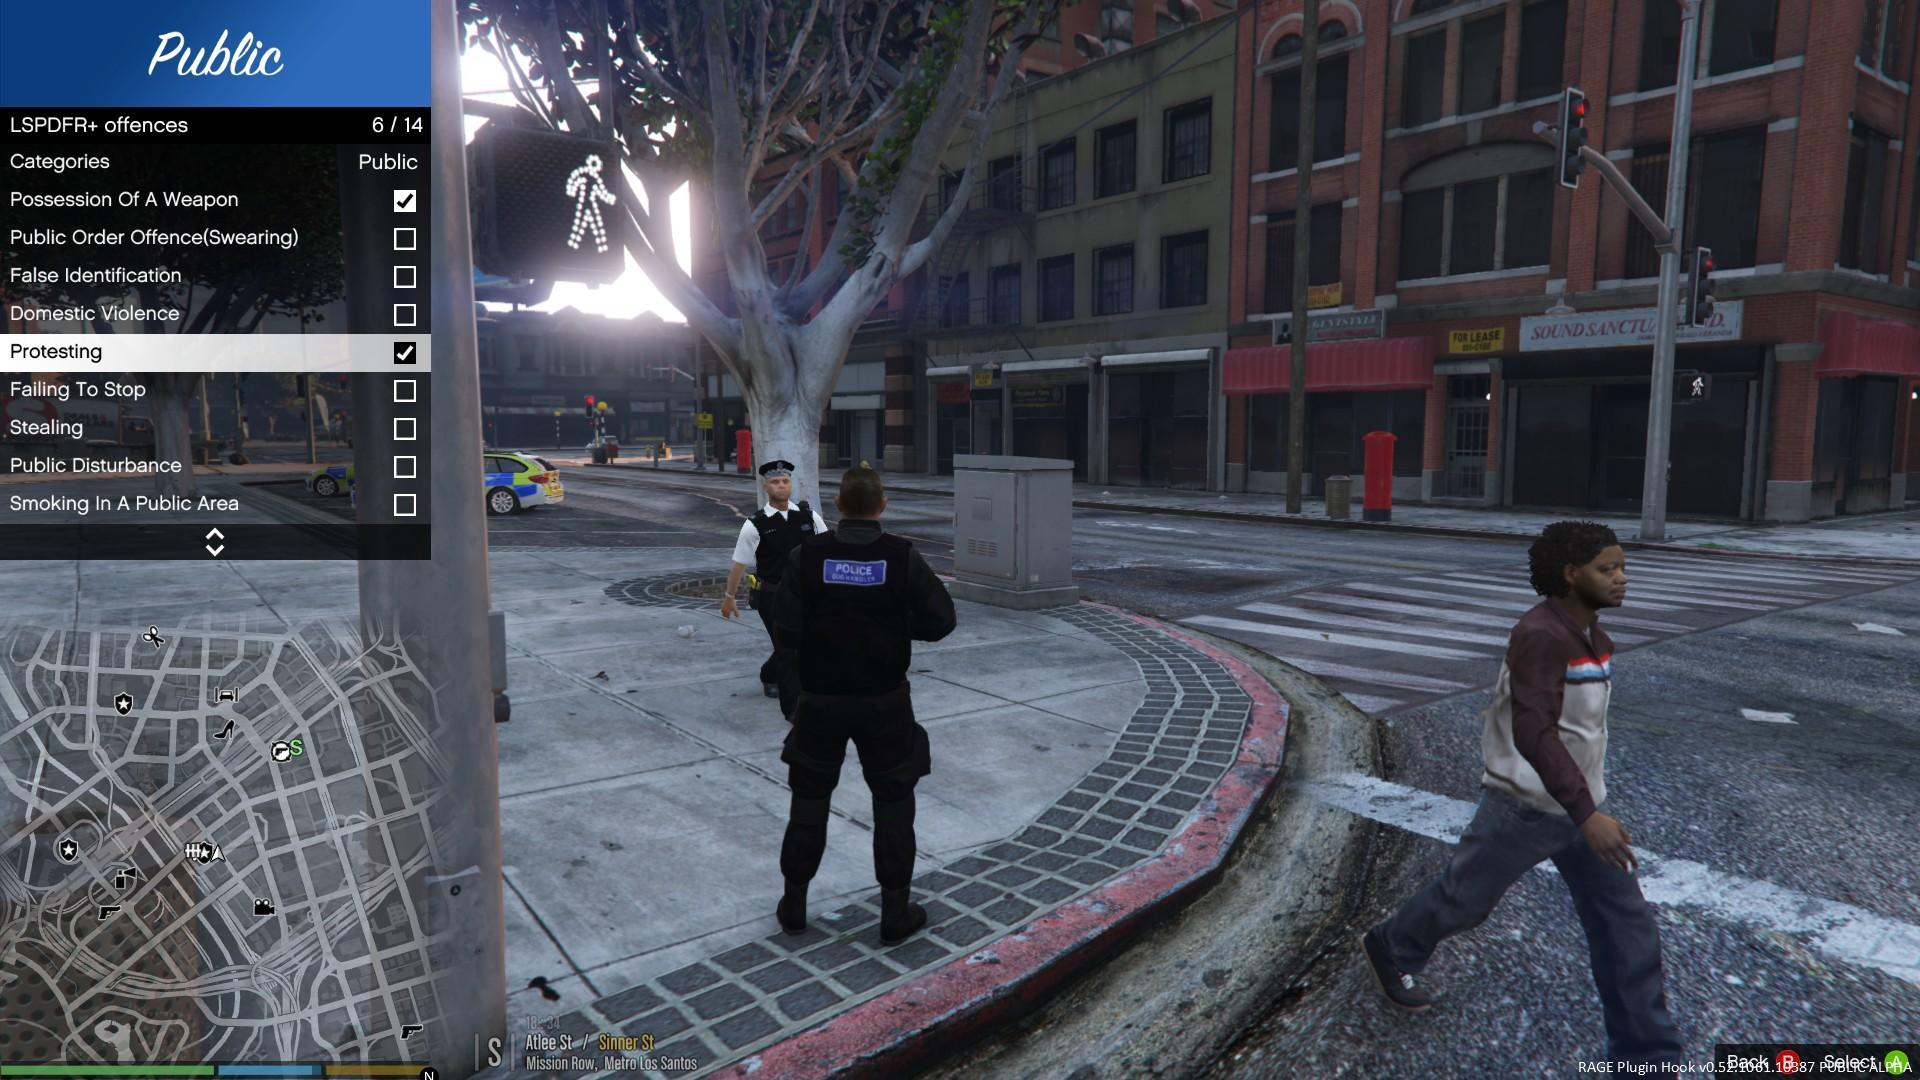 how to add addons for lspdfr